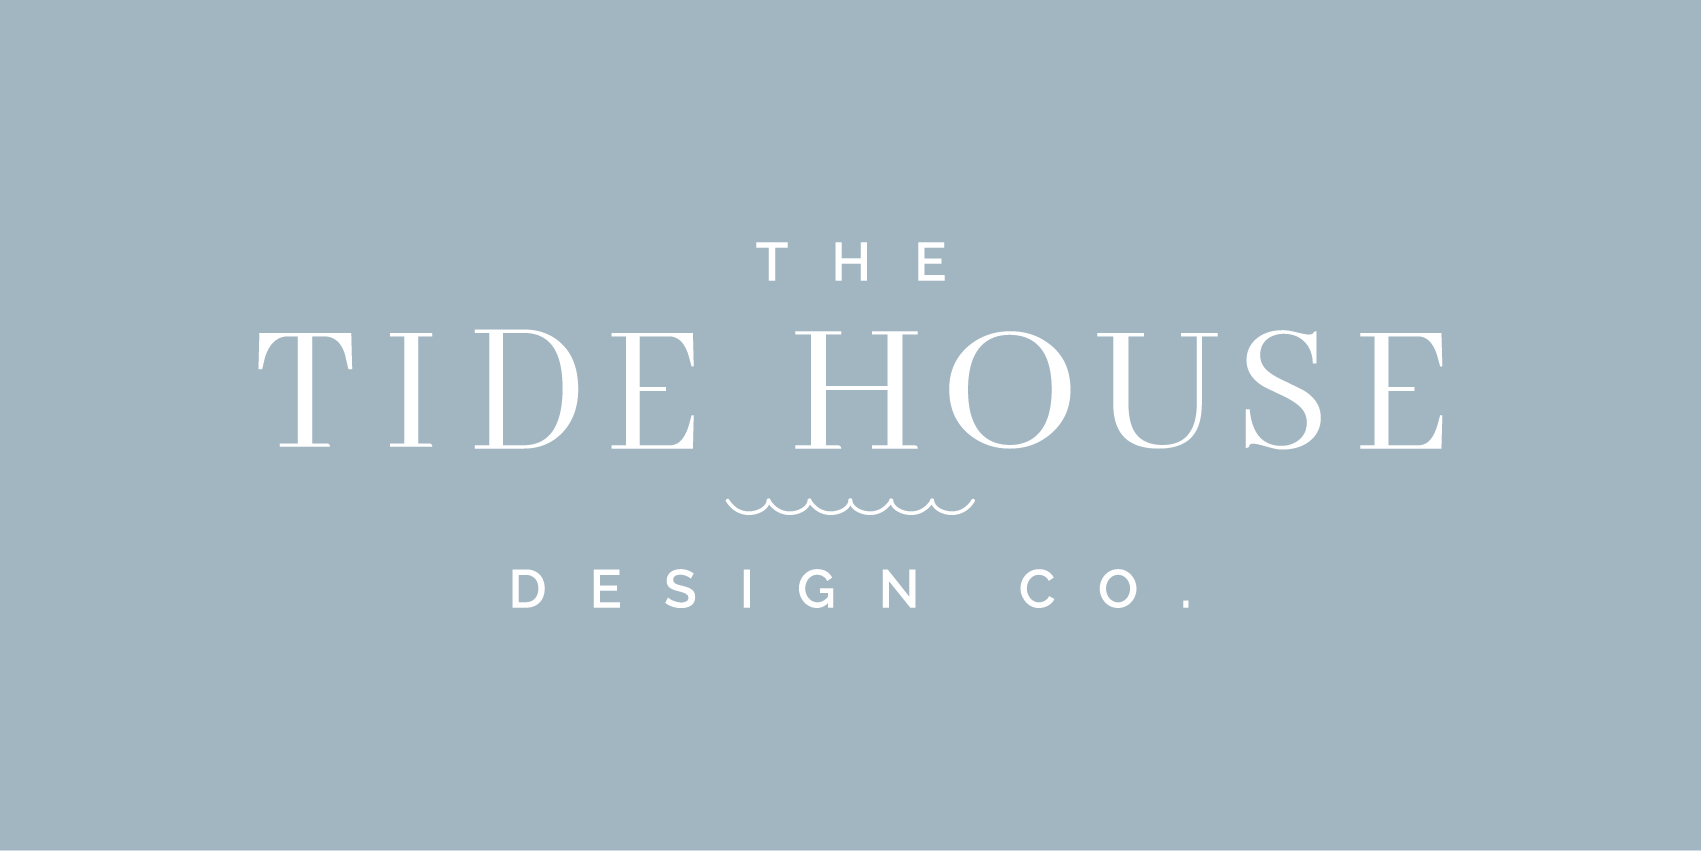 The Tide House Design Co. for interior design by the sea.